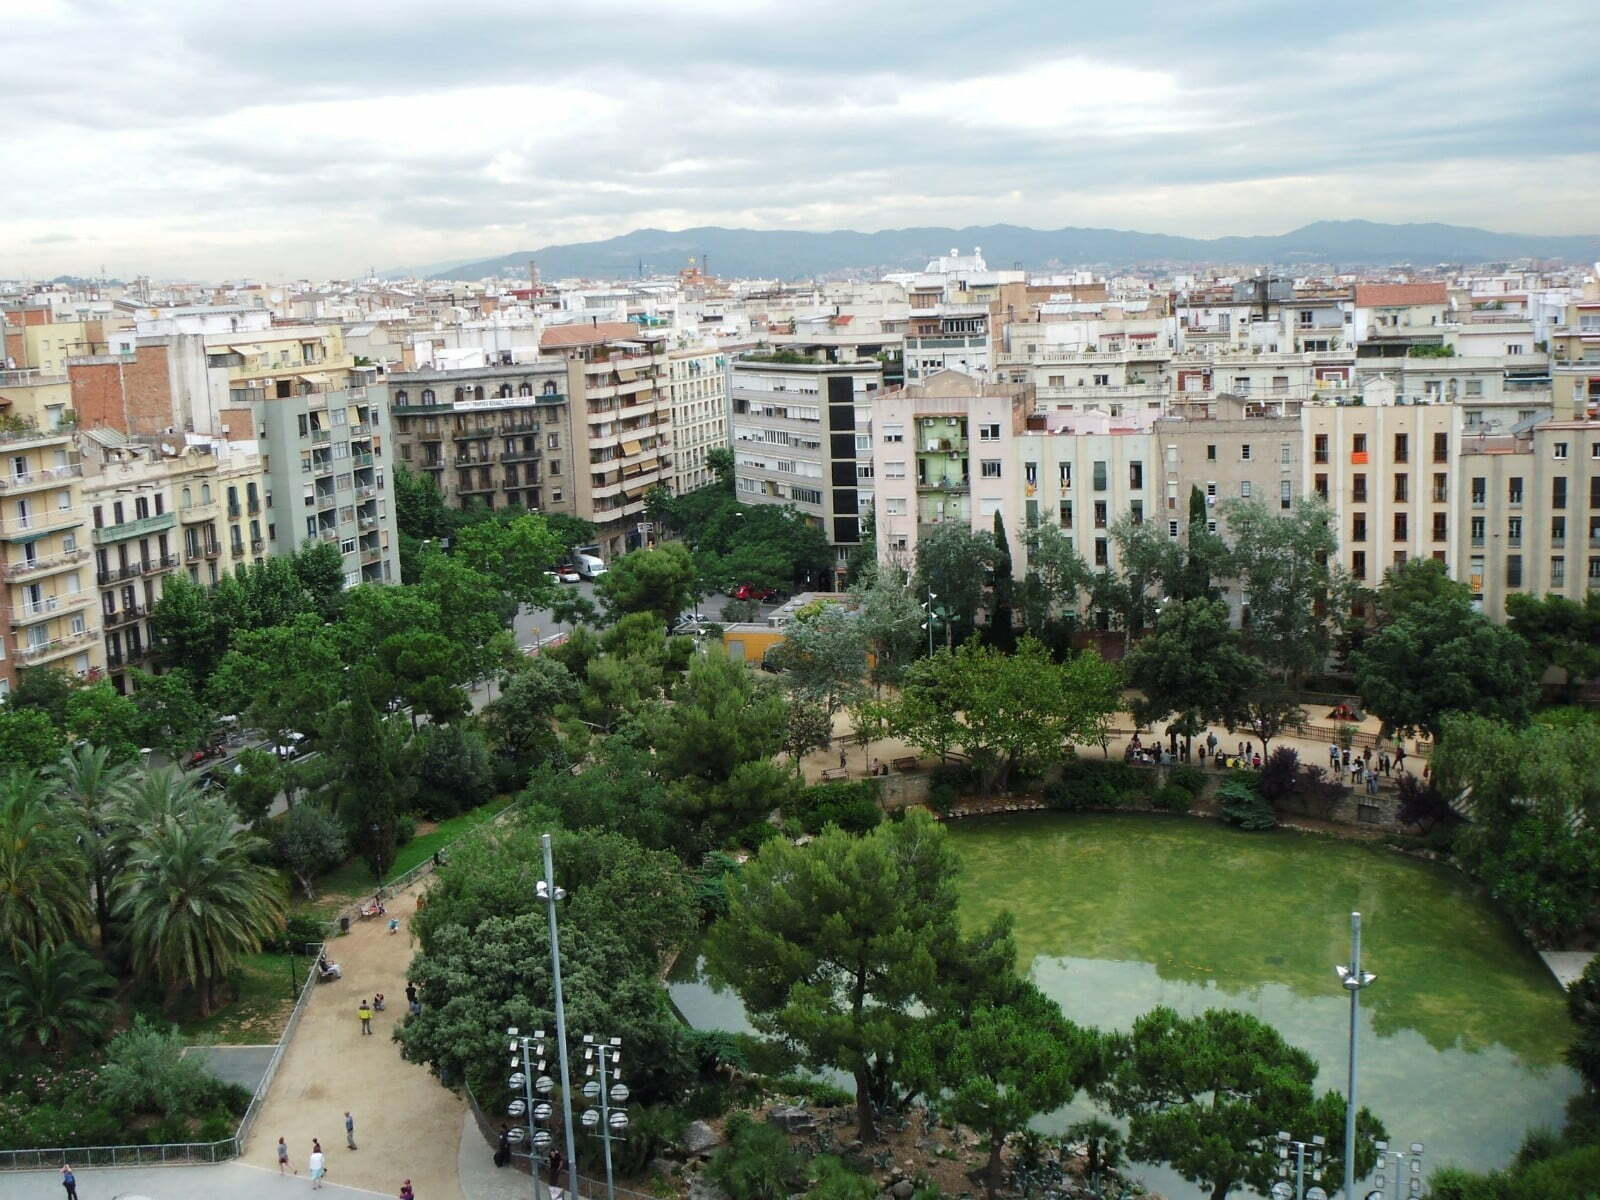 In Photos: Why Visiting The Inside of Sagrada Familia Is Worth It 17